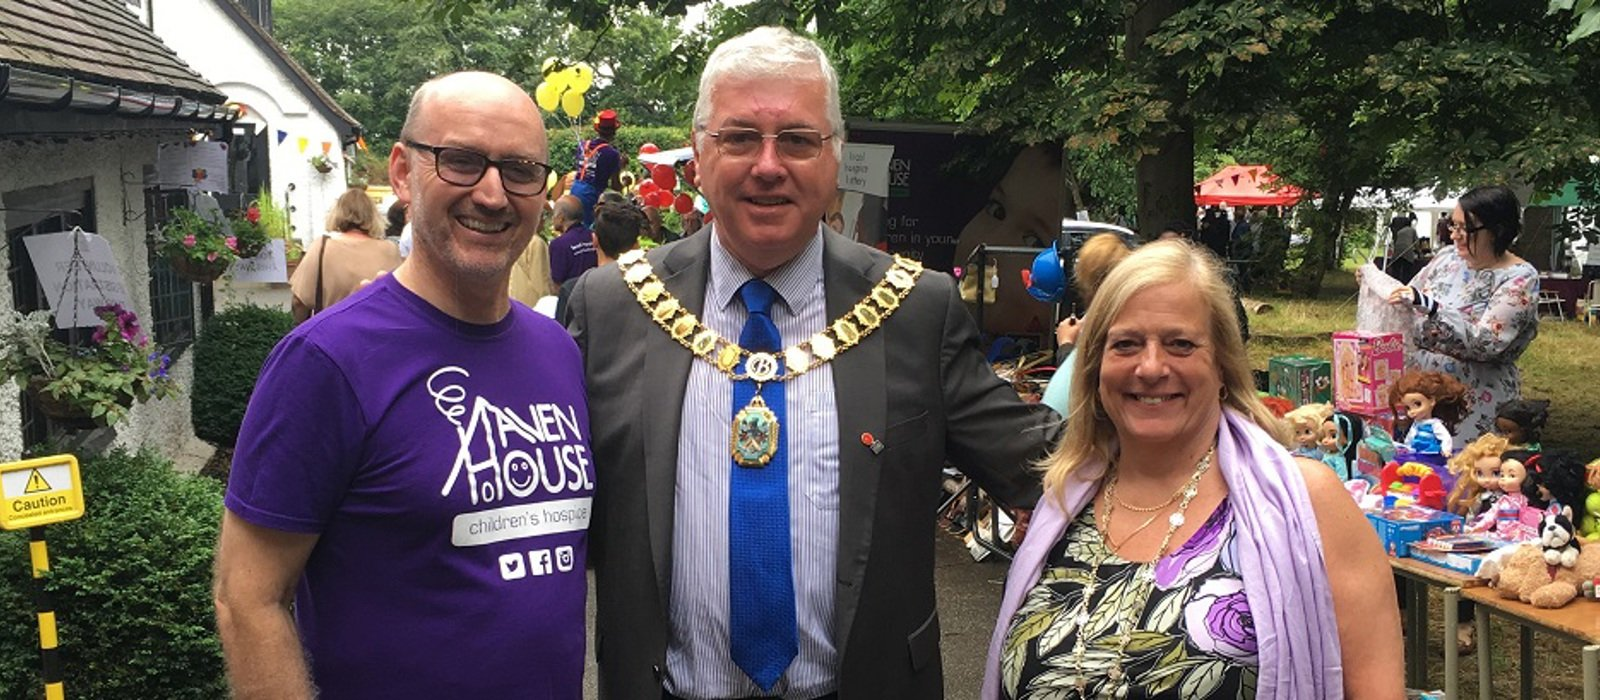 Mayor of Broxbourne praises Haven House staff